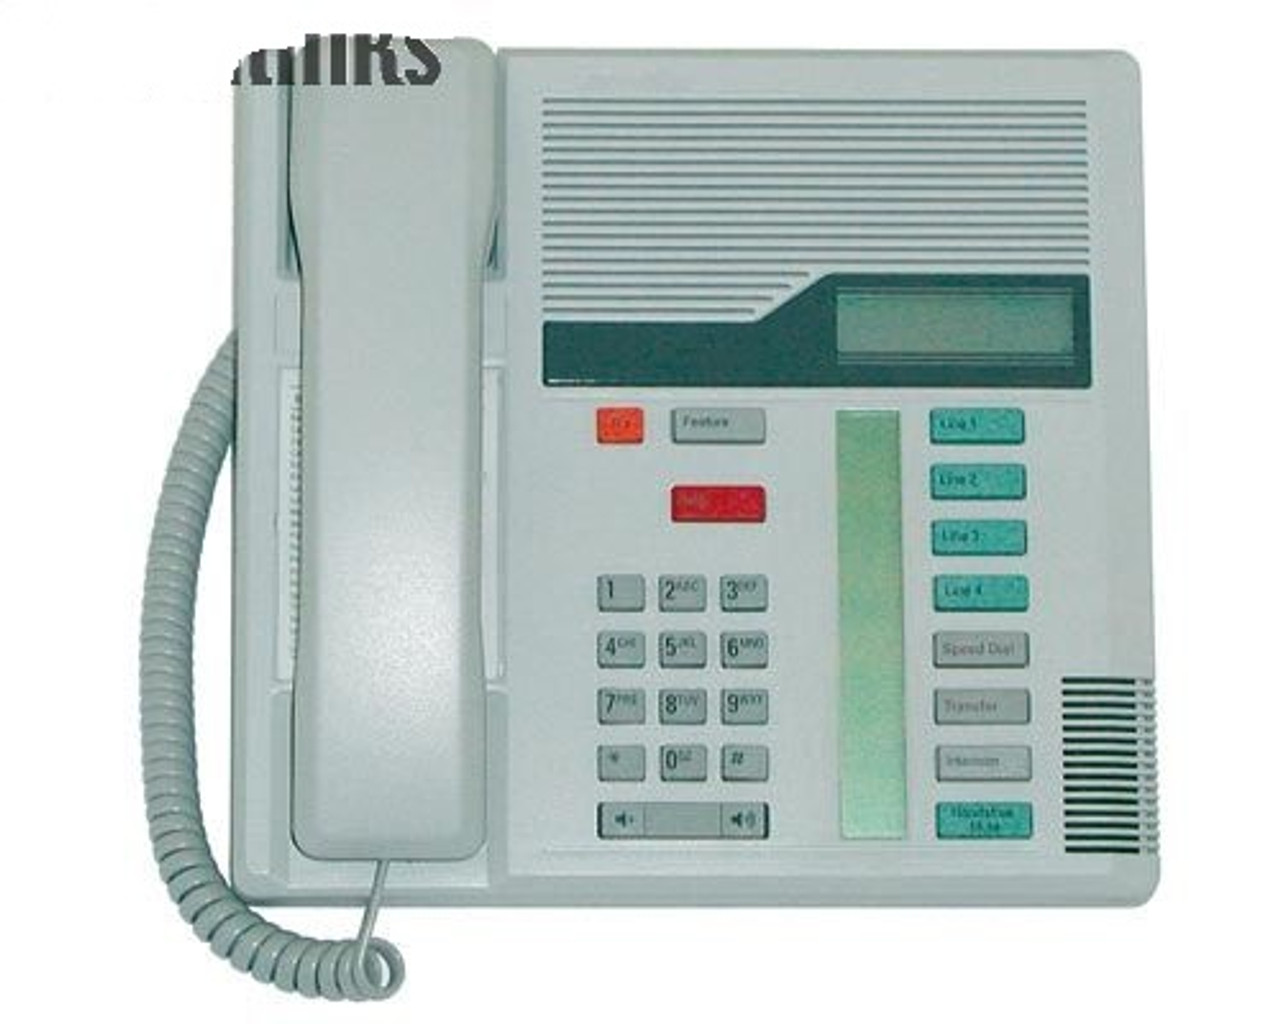 What Phone System Does My Meridian Telephone Work On?